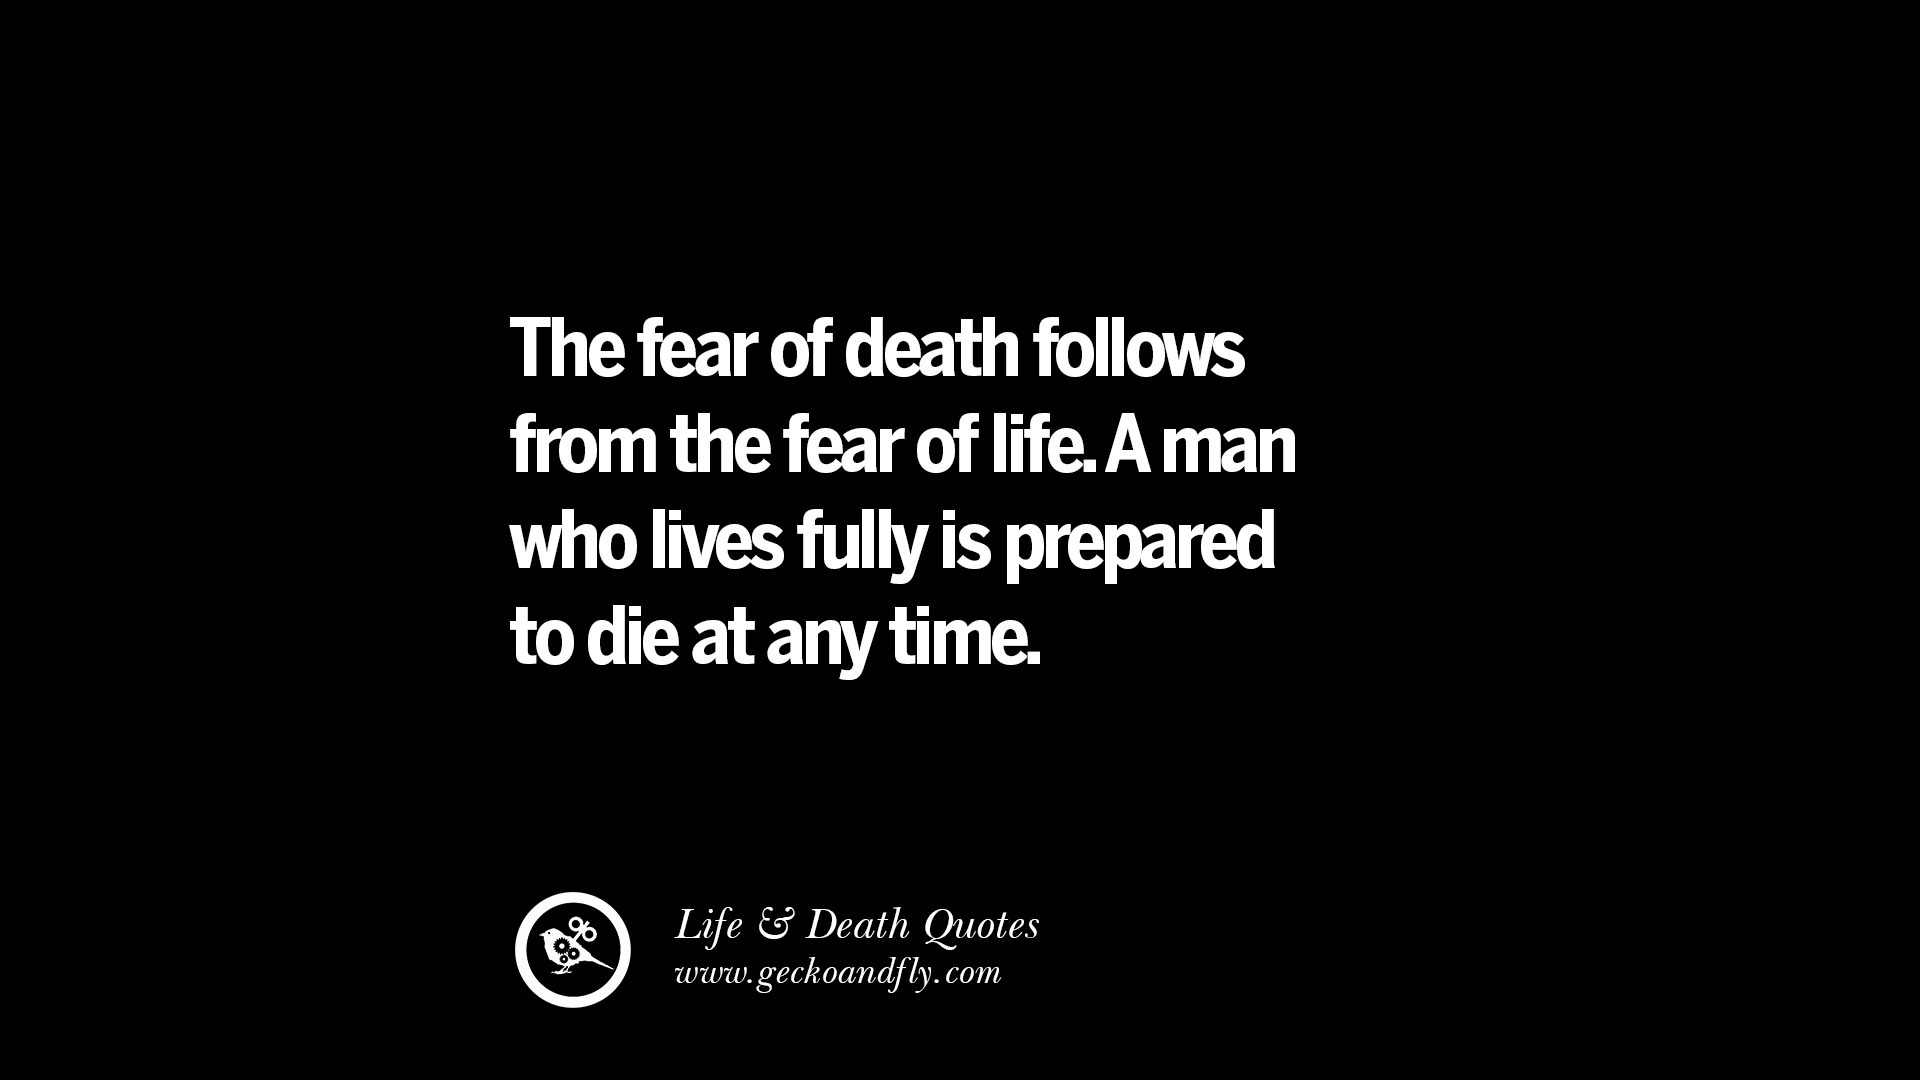 Have A Great Life Quotes 20 Inspirational Quotes On Life Death And Losing Someone